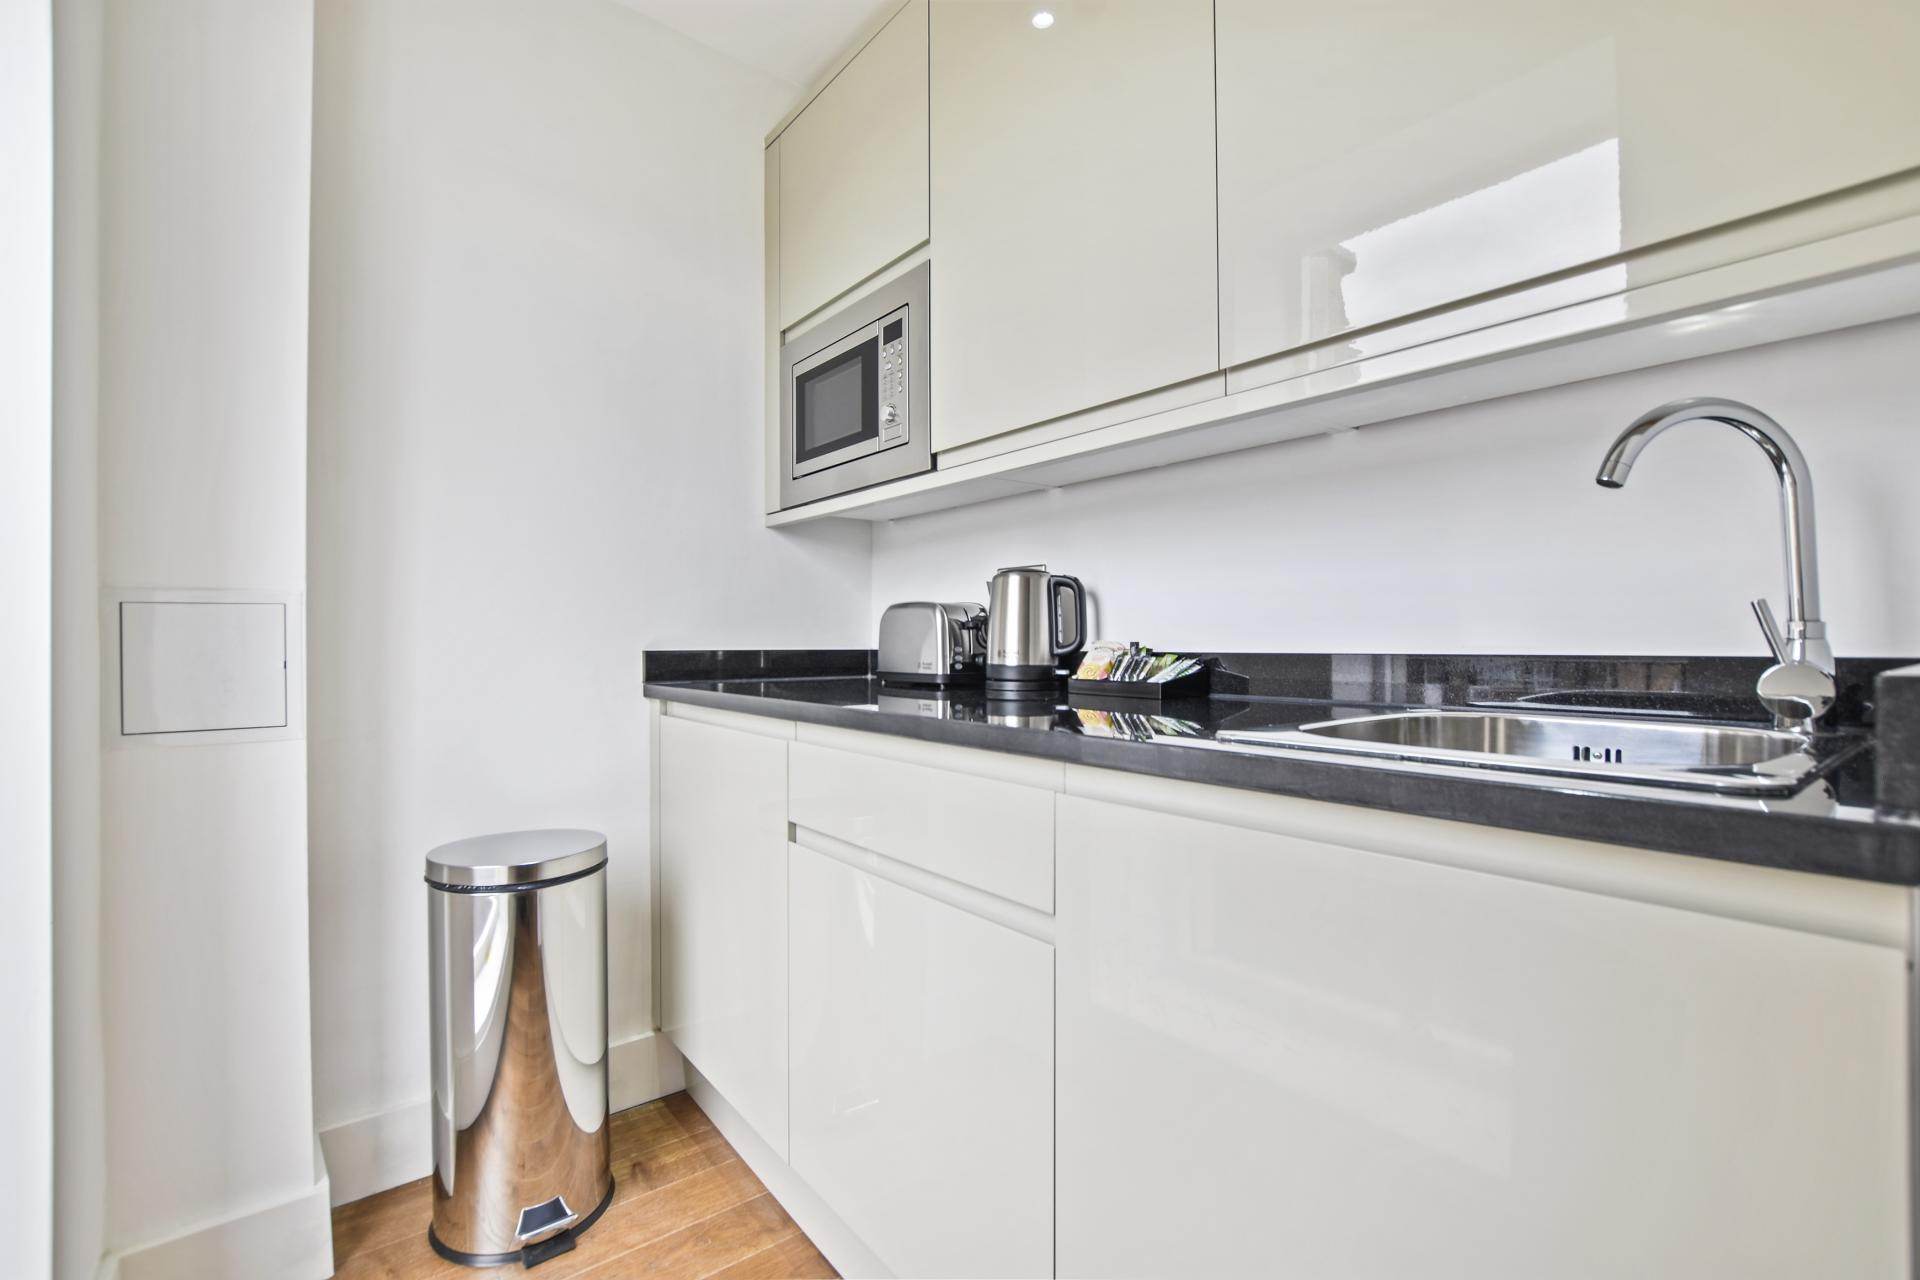 Kitchen at Leinster Square by Bridgestreet, Bayswater, London - Citybase Apartments